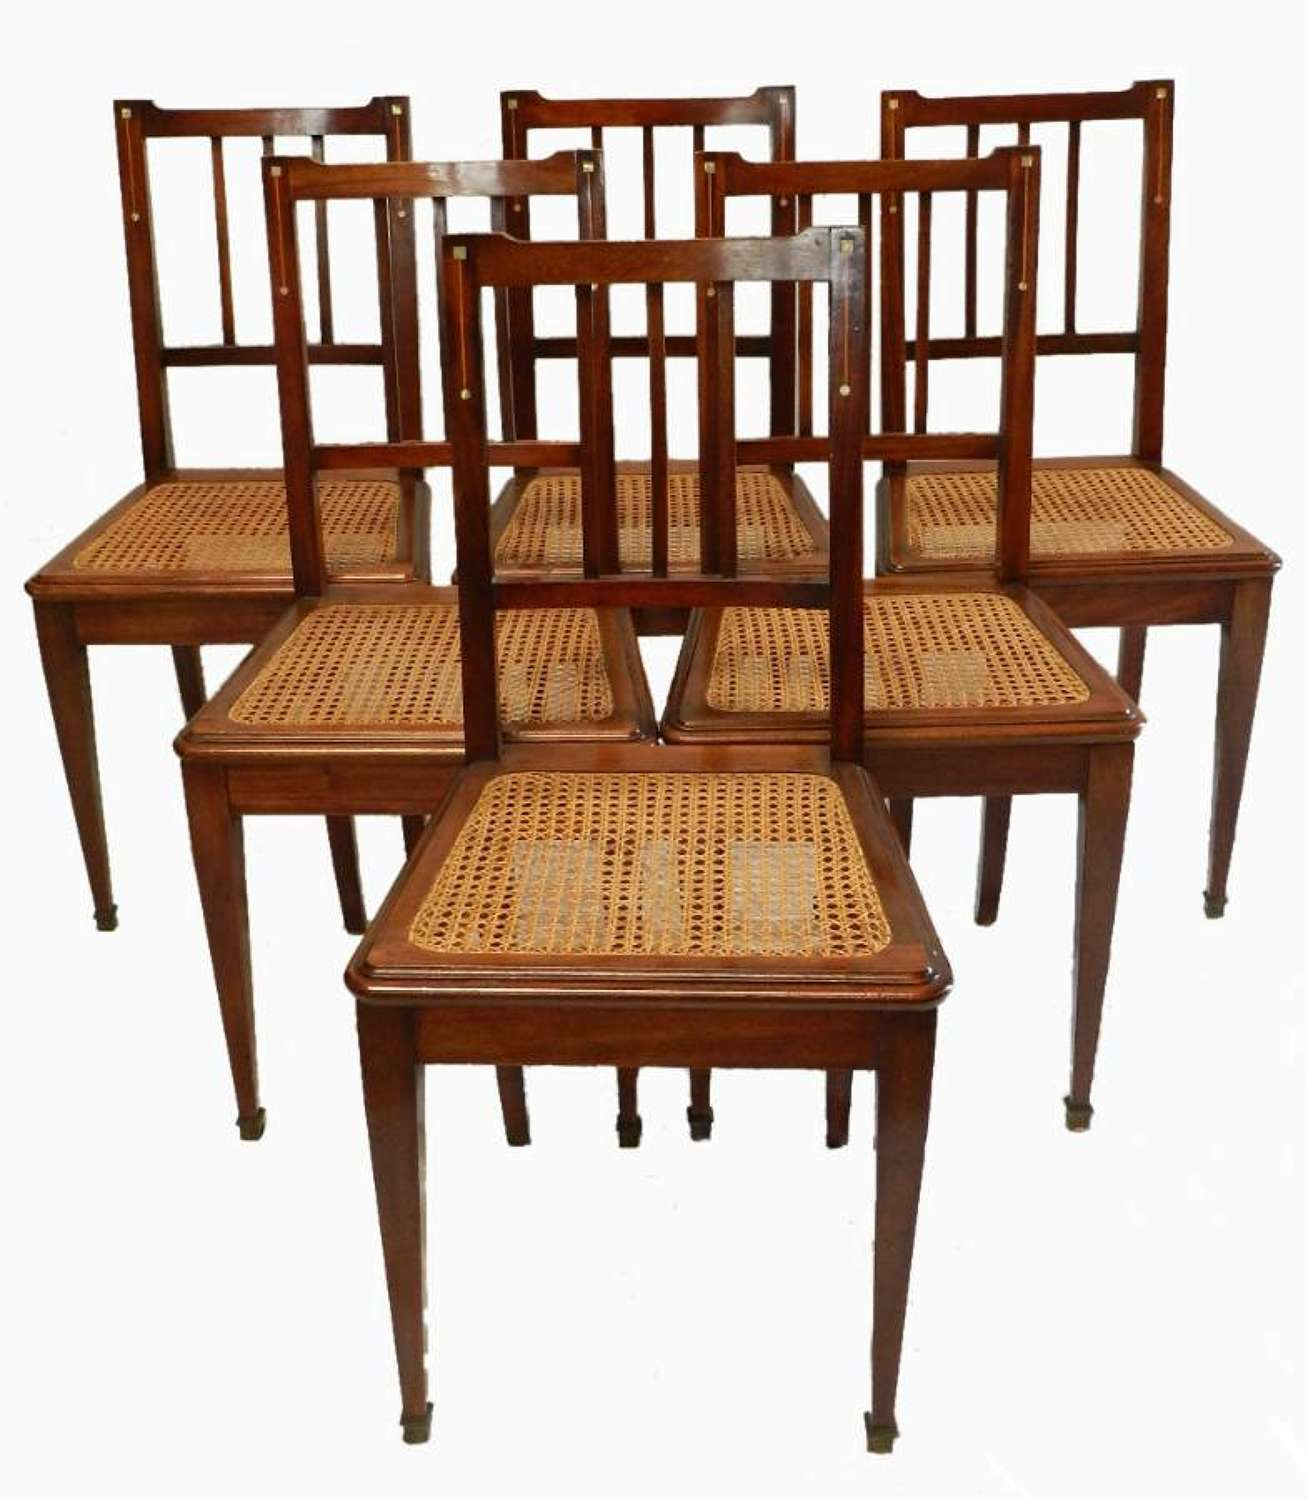 6 Cane Seat French Art Deco Dining Chairs MoP